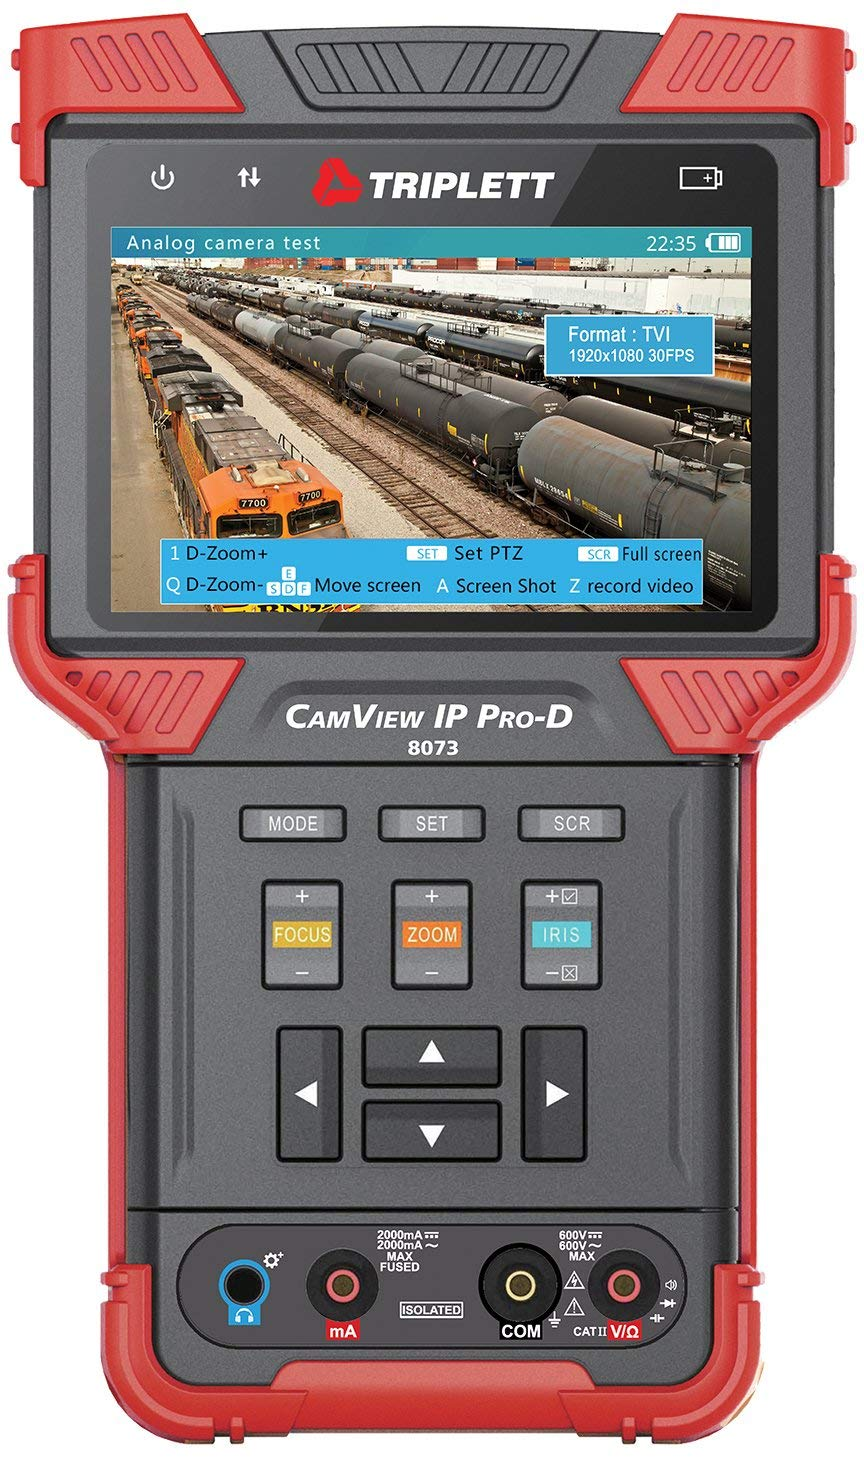 Triplett CamView IP Pro-D All-in-One IP, AHD 2.0, HD-TVI 3.0, and HD-CVI 3.0 Camera Tester with Built-in DHCP Server (8073)